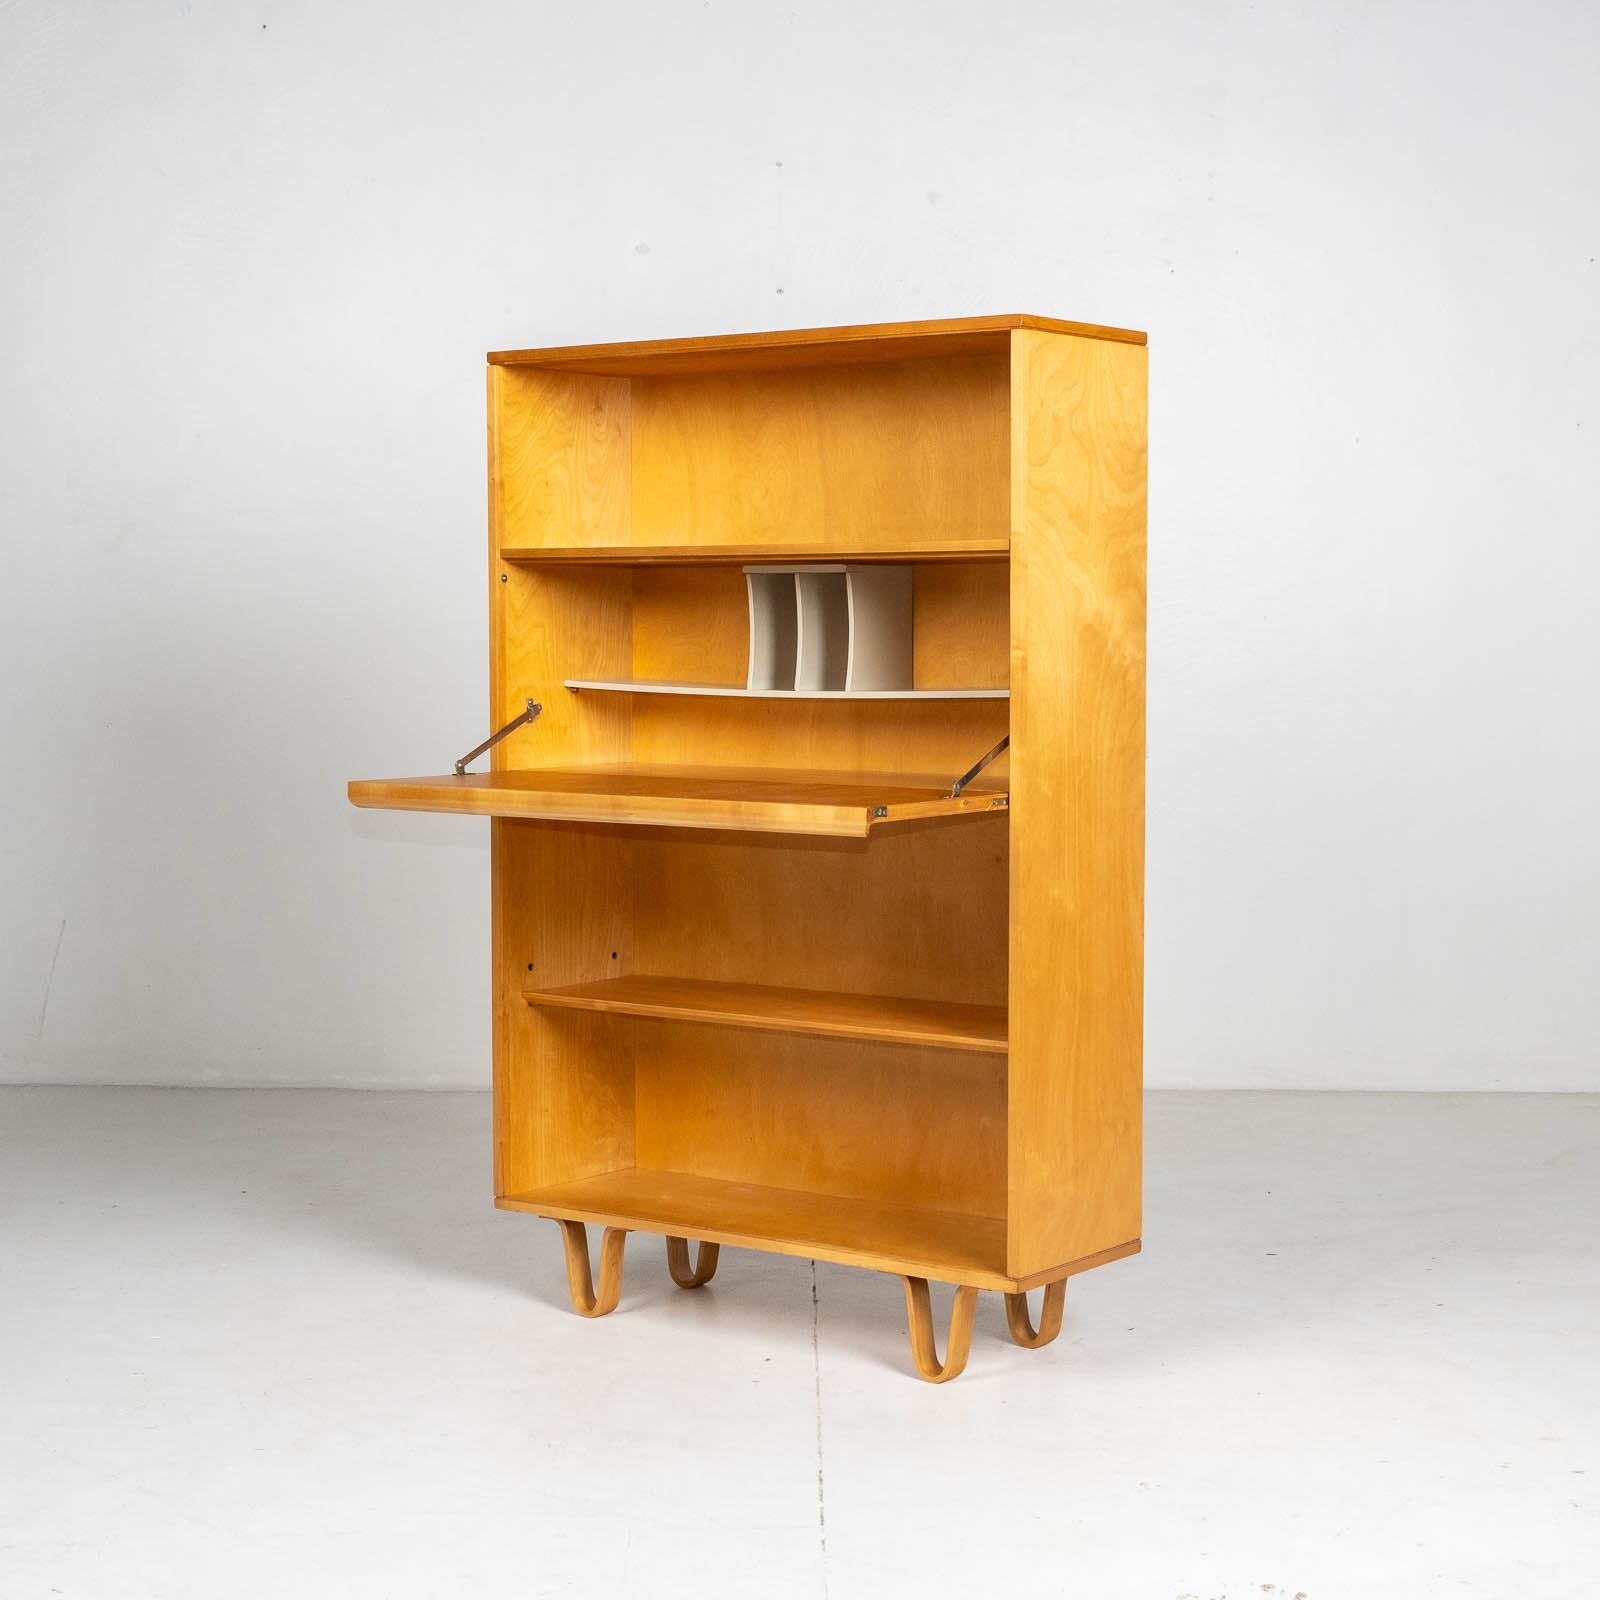 Bb04 Bookcase By Cees Braakman For Pastoe In Birch, 1950s, The Netherlands 0015